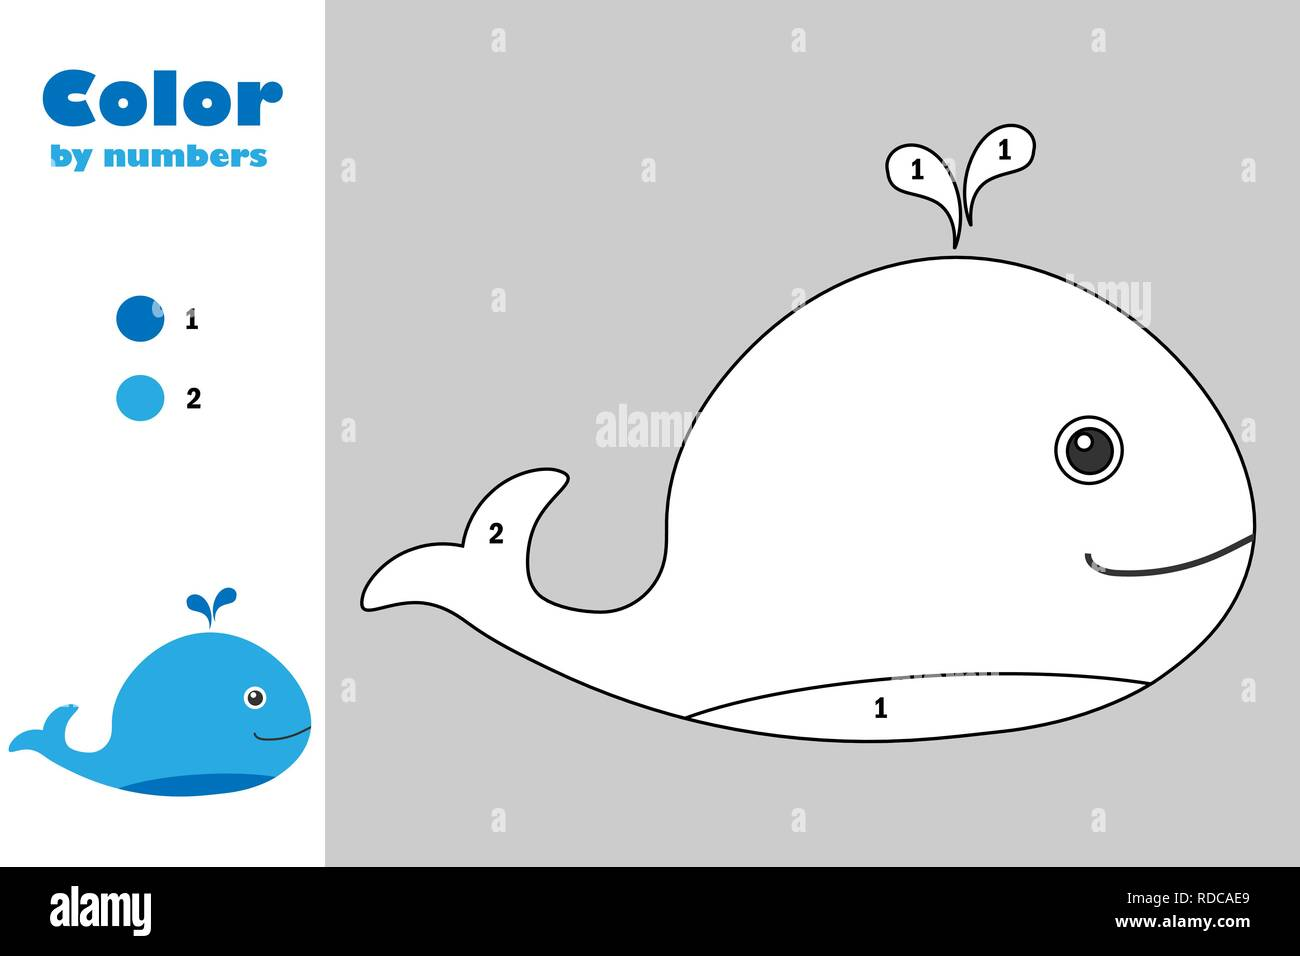 whale in cartoon style color by number education paper game for the development of children coloring page kids preschool activity printable works RDCAE9